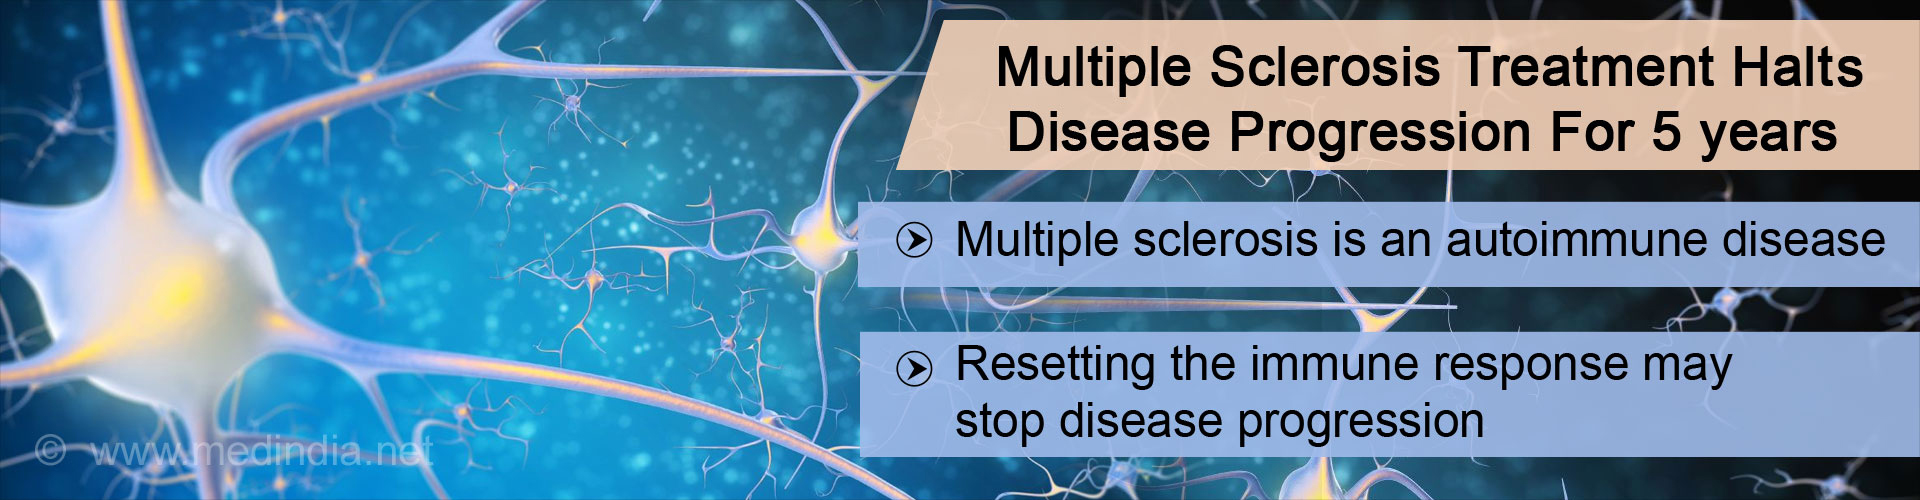 New Treatment for Multiple Sclerosis May Halt Disease Progression